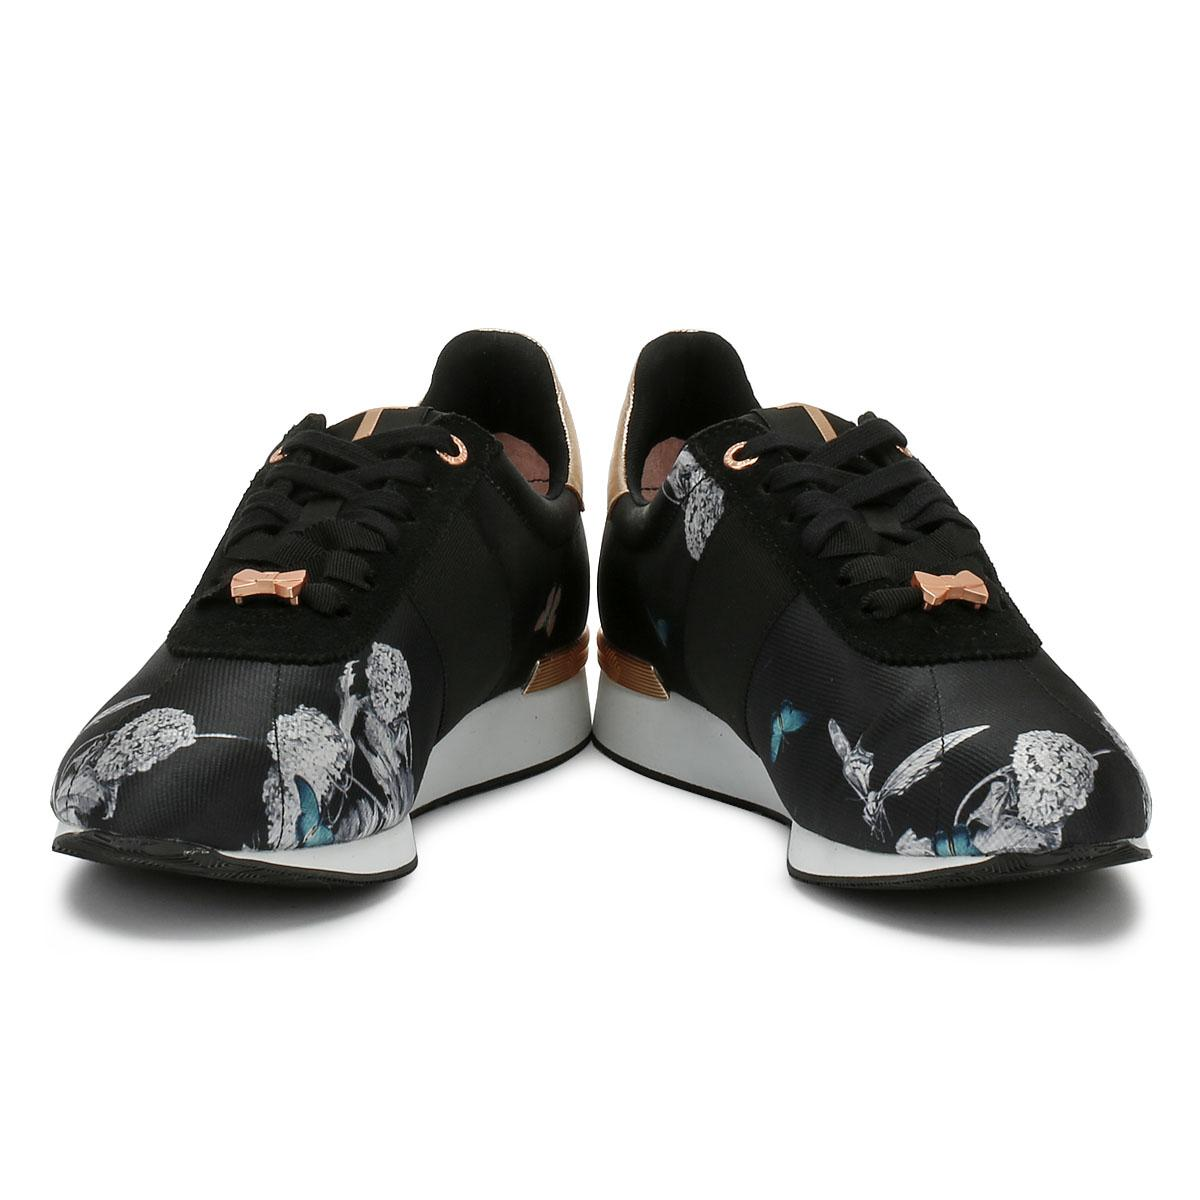 98fbcc5abe6d Lyst - Ted Baker Emileio Womens Black Narnia Jacquard Trainers in Black